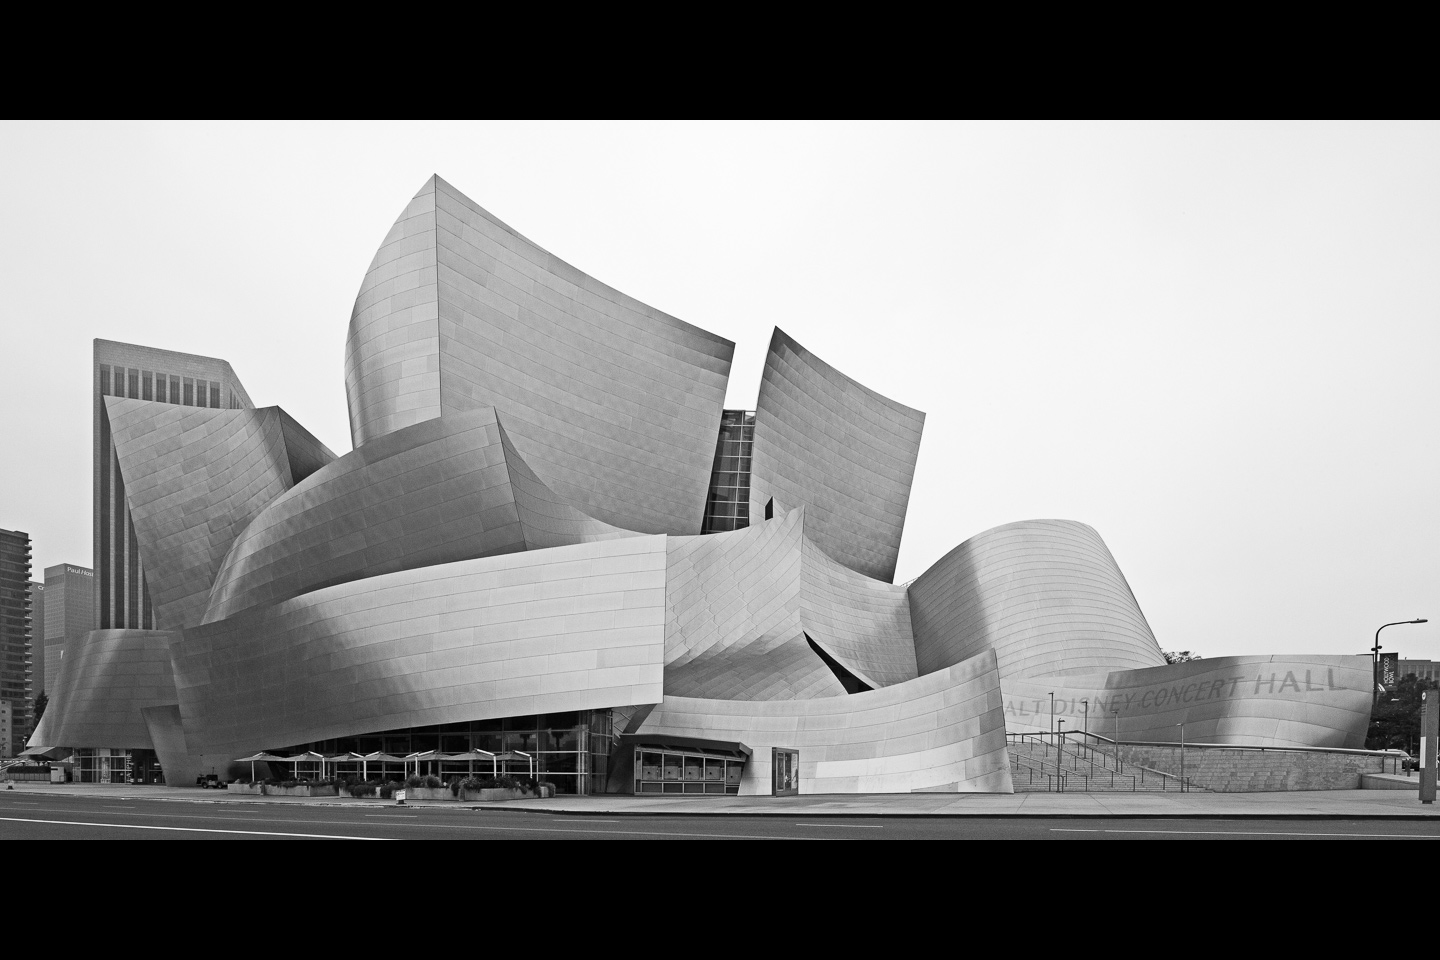 a black & white street view of the Walt Disney Concert Hall, designed by Frank Gehry, located in Los Angeles, photographed by Jacob Rosenfeld